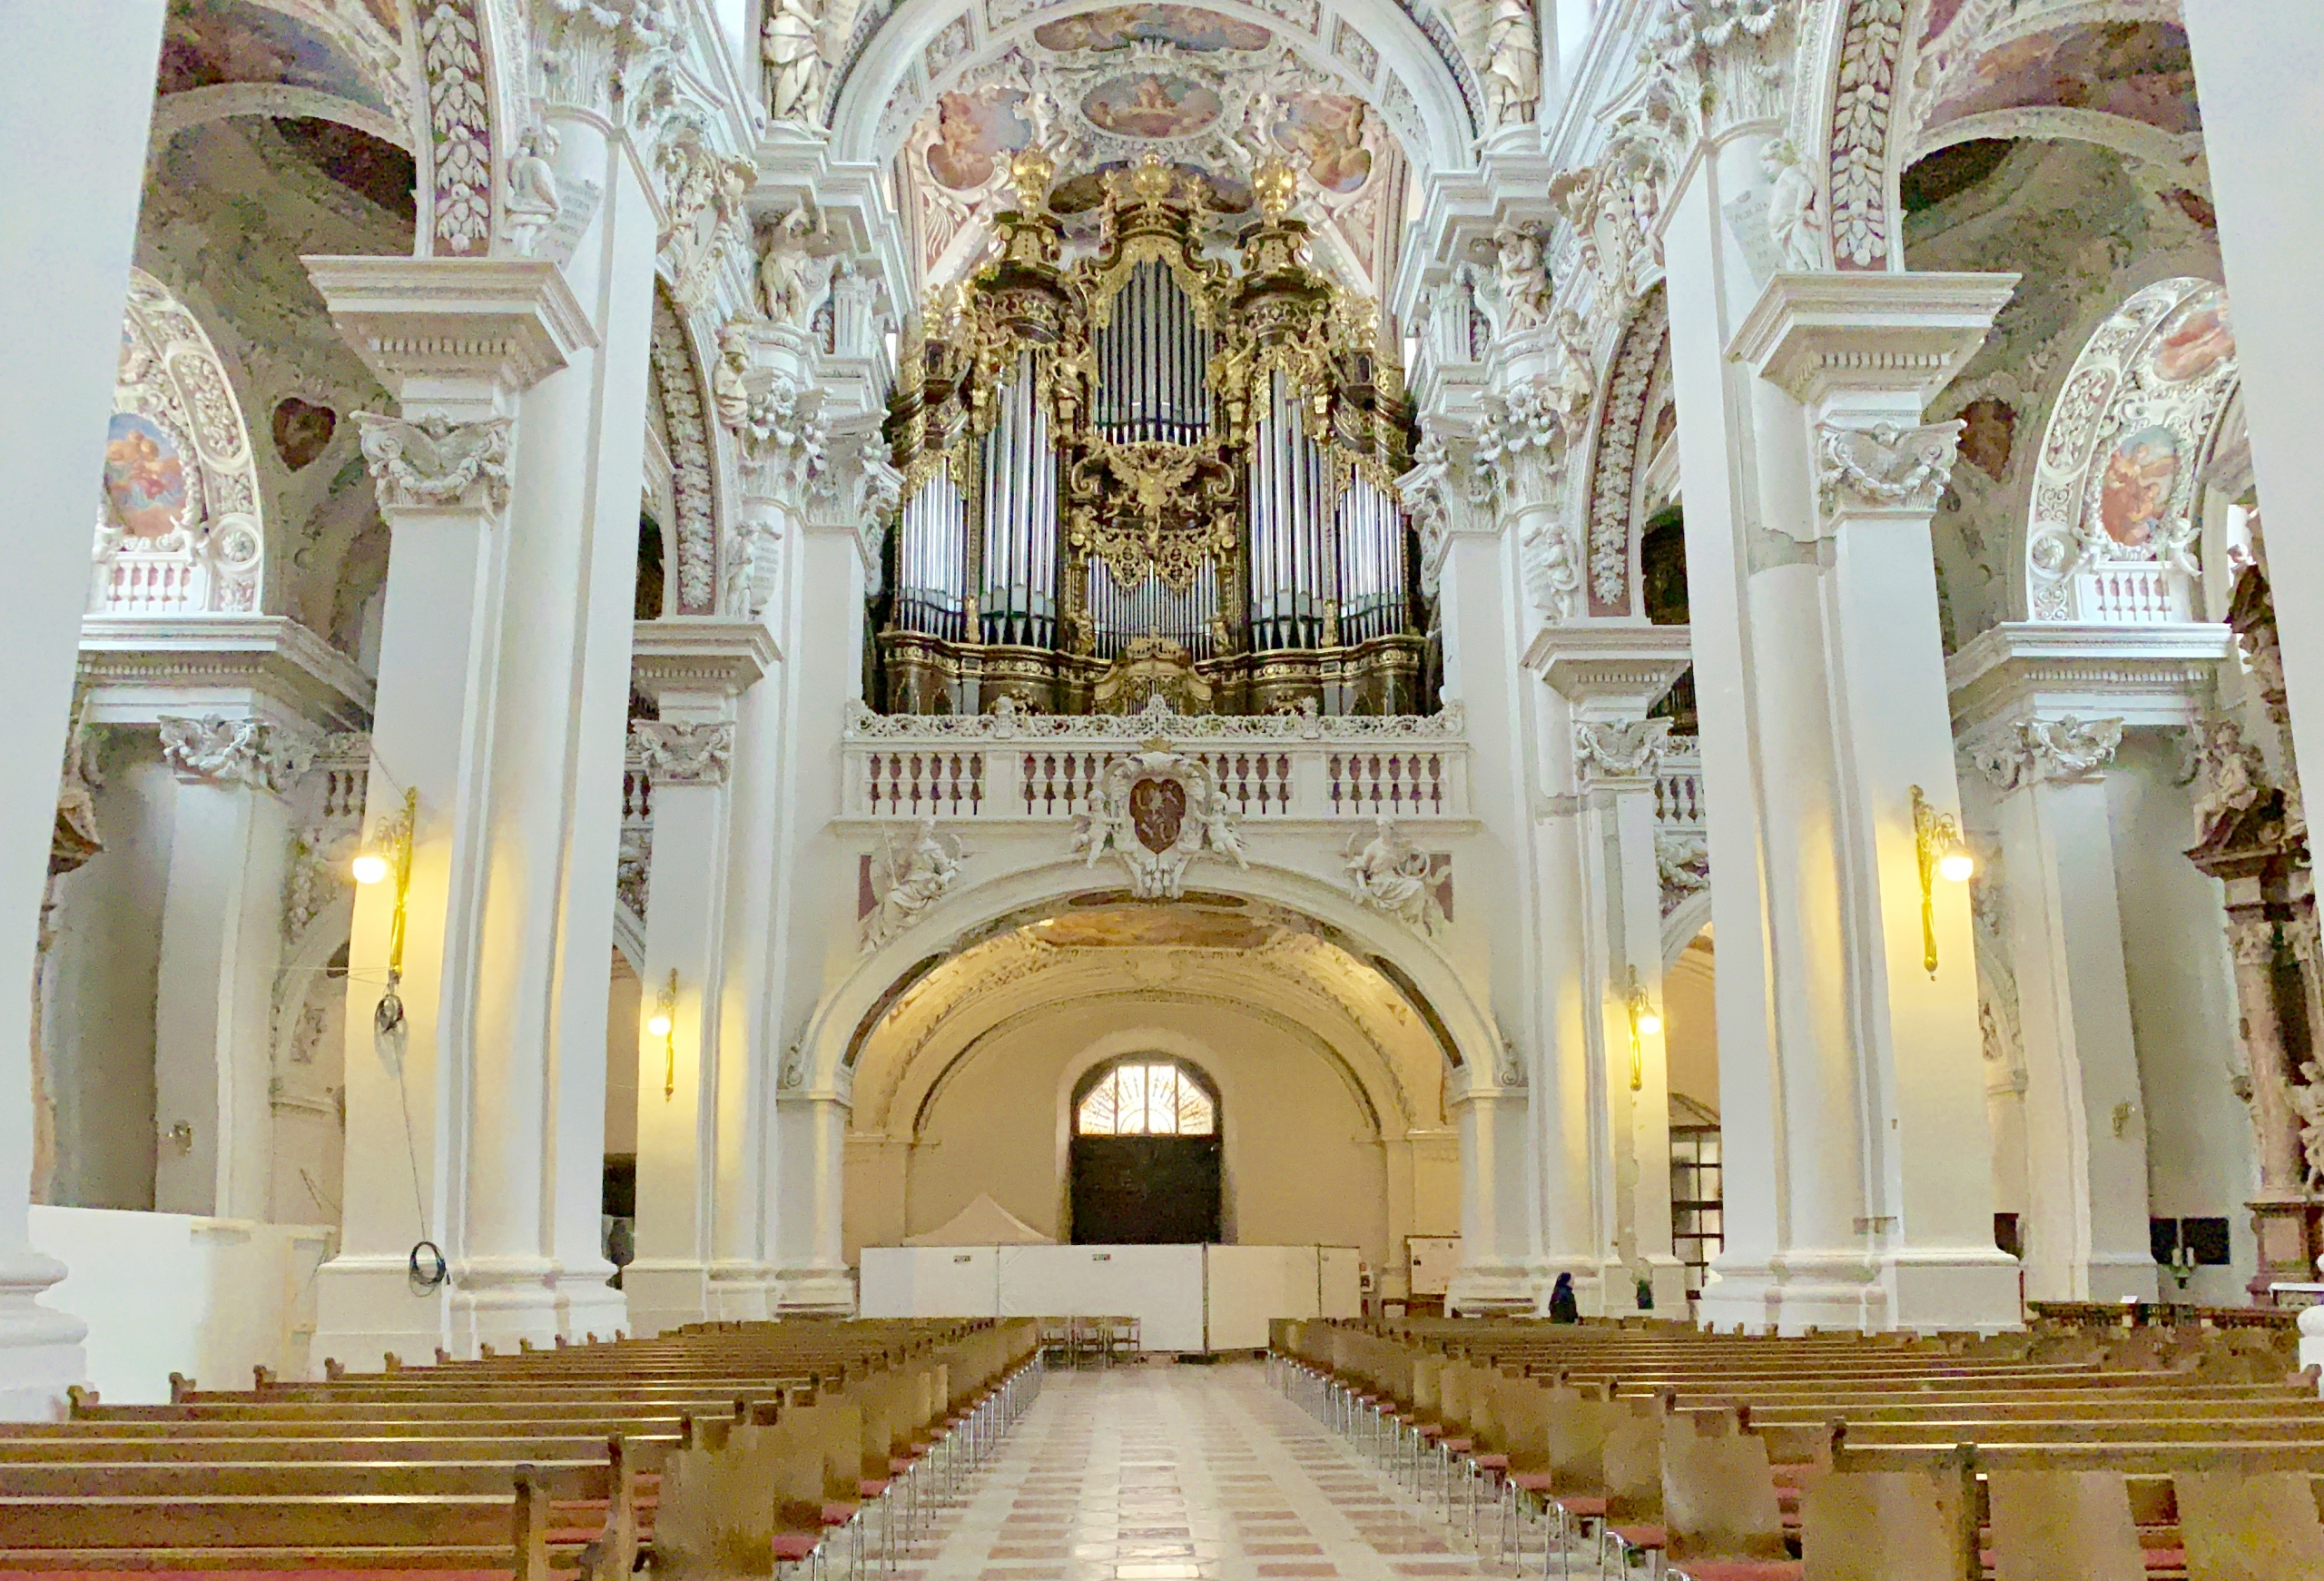 largest pipe organ in Europe (Passau)